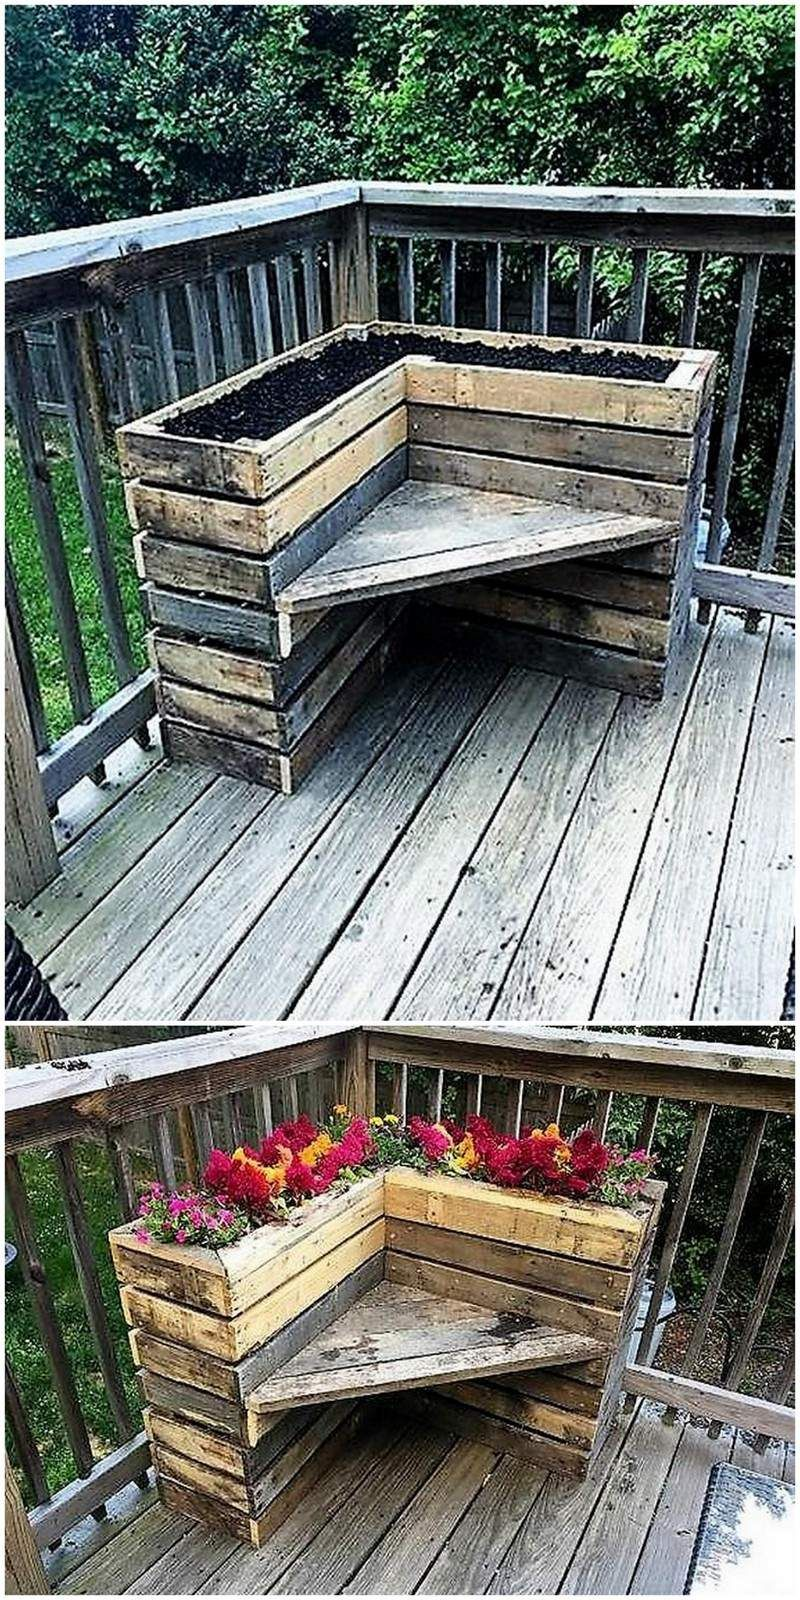 369fa20411f2ea57c2bbfec51e826837 Pallet Diy Backyard Ideas On A Budget on diy outdoor rooms on a budget, diy centerpieces on a budget, small backyard landscaping on a budget, diy christmas on a budget, diy fall decorating ideas, diy furniture on a budget, diy cheap outdoor summer wedding ideas, diy container gardening ideas, diy gifts on a budget, diy landscaping on a budget, diy concrete block bench, diy garden ideas, backyard weddings on a budget, diy kitchen ideas on a budget, small backyard makeovers on a budget, backyard designs on a budget, diy yard ideas, diy backyard ideas to help cool off, diy bedroom decorating ideas on a budget, diy decks on a budget,